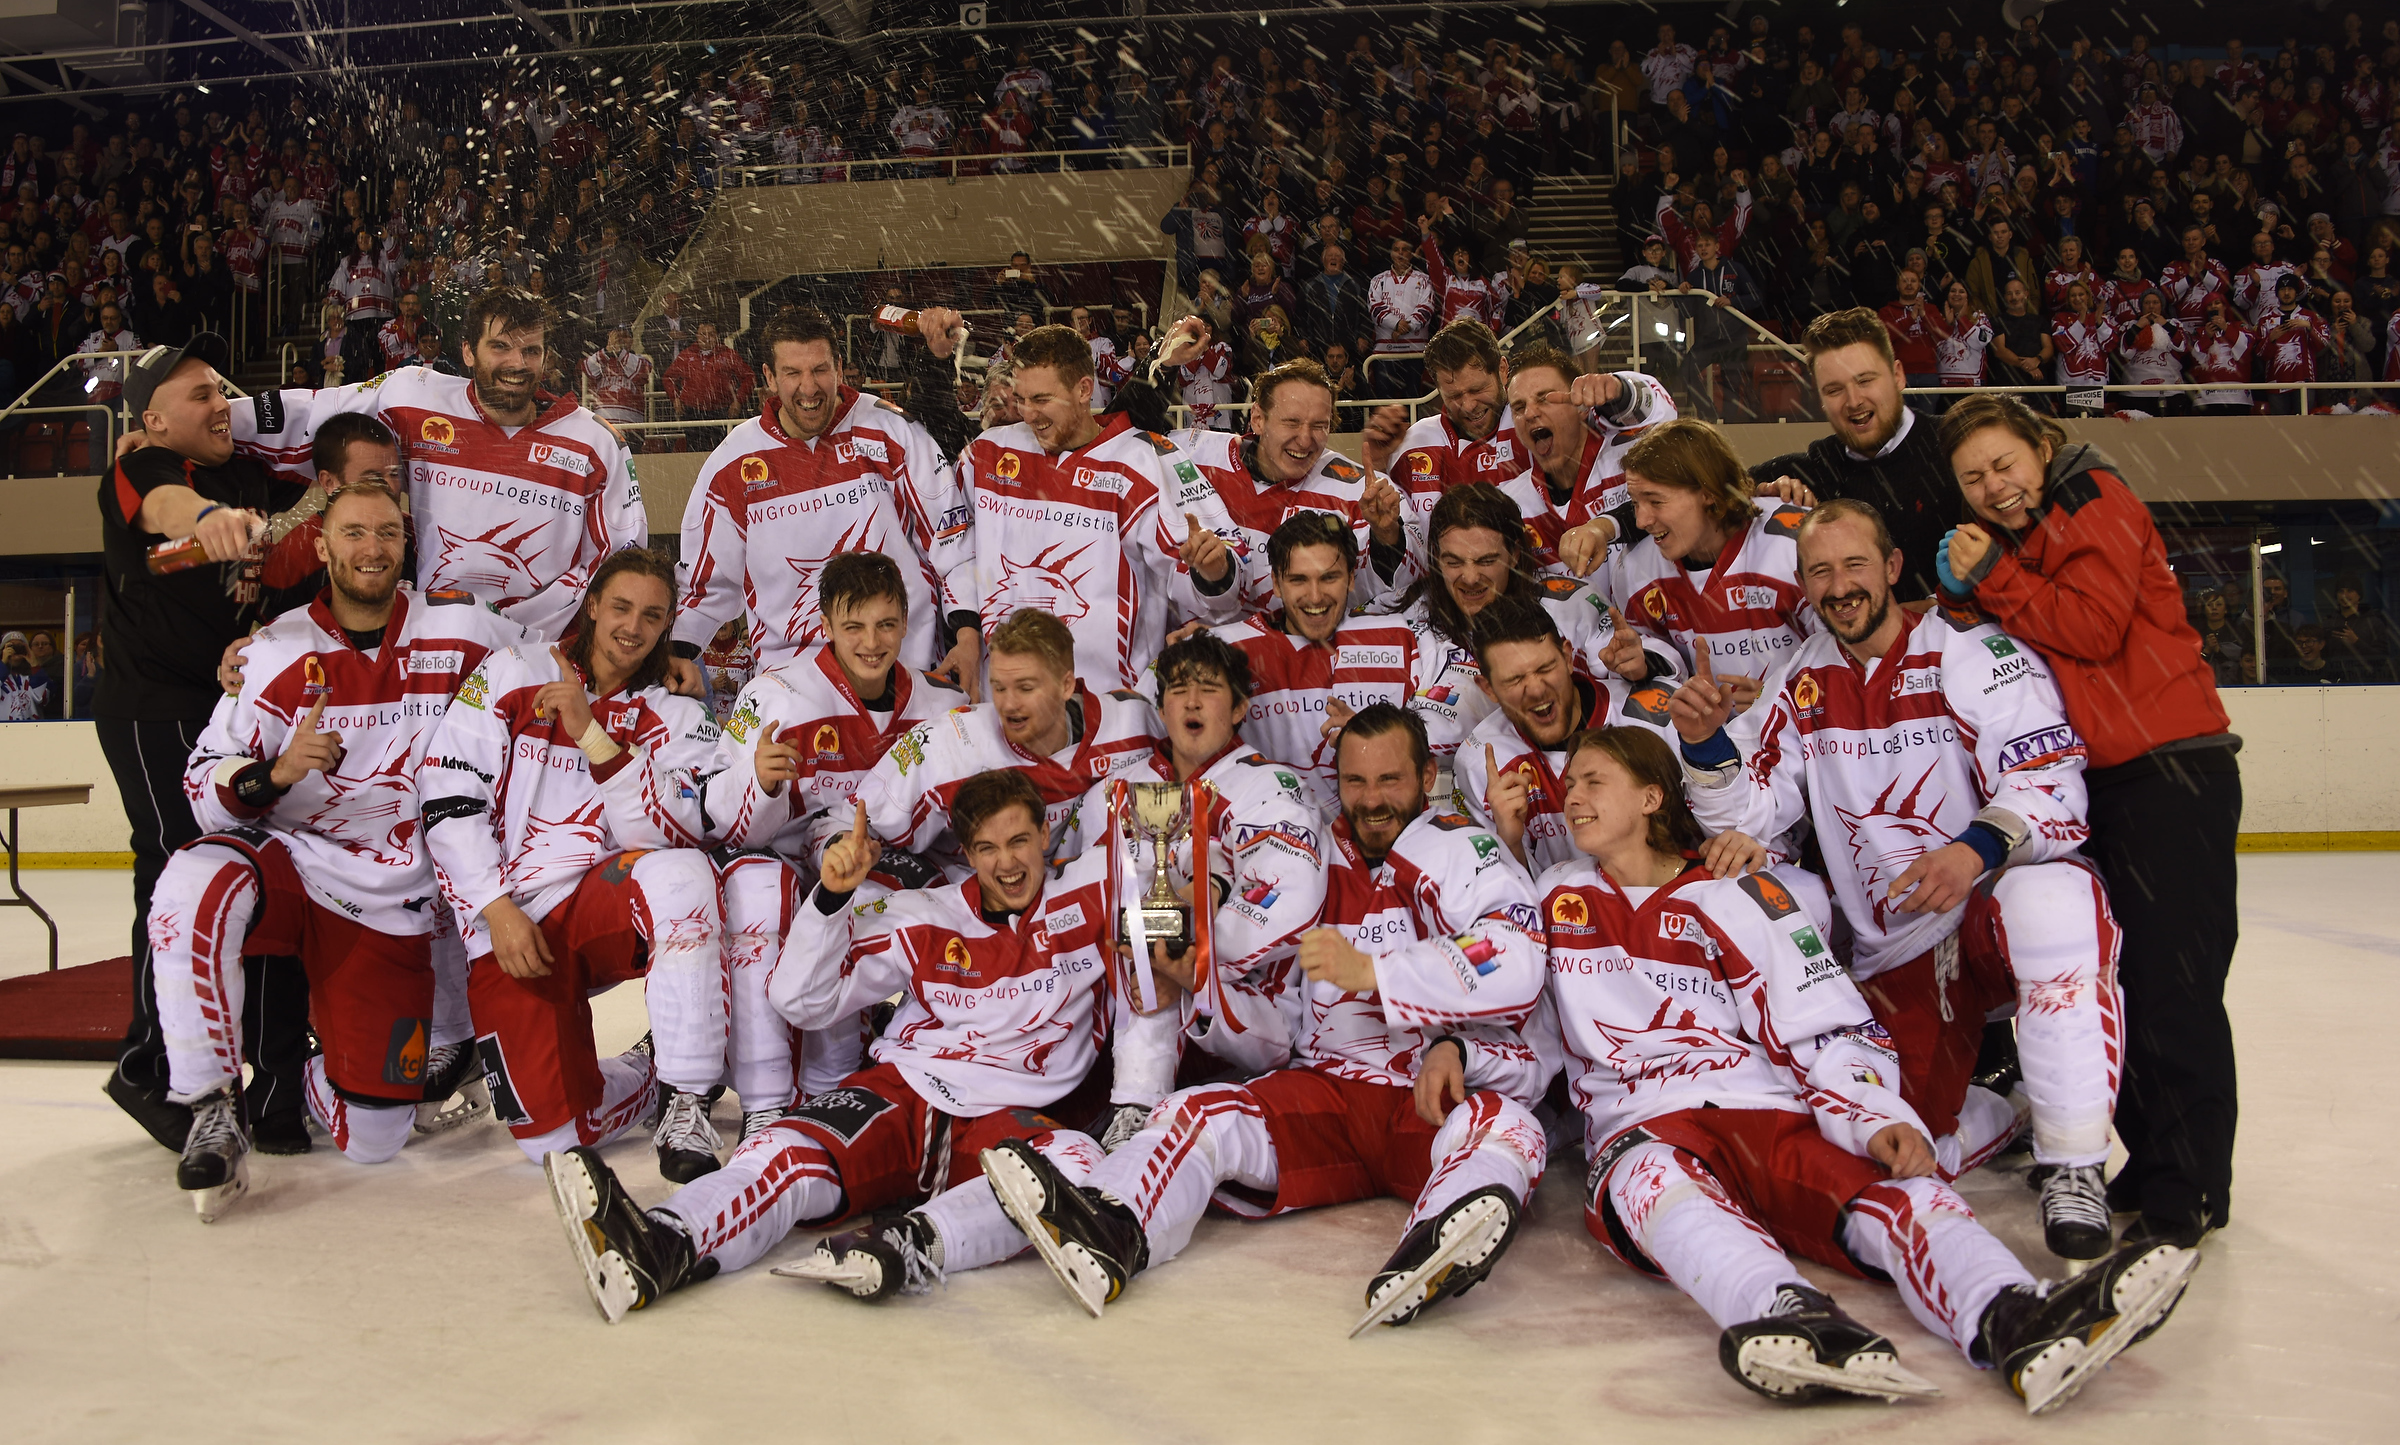 Swindon Wildcats' Successful Winning Weekend in Review